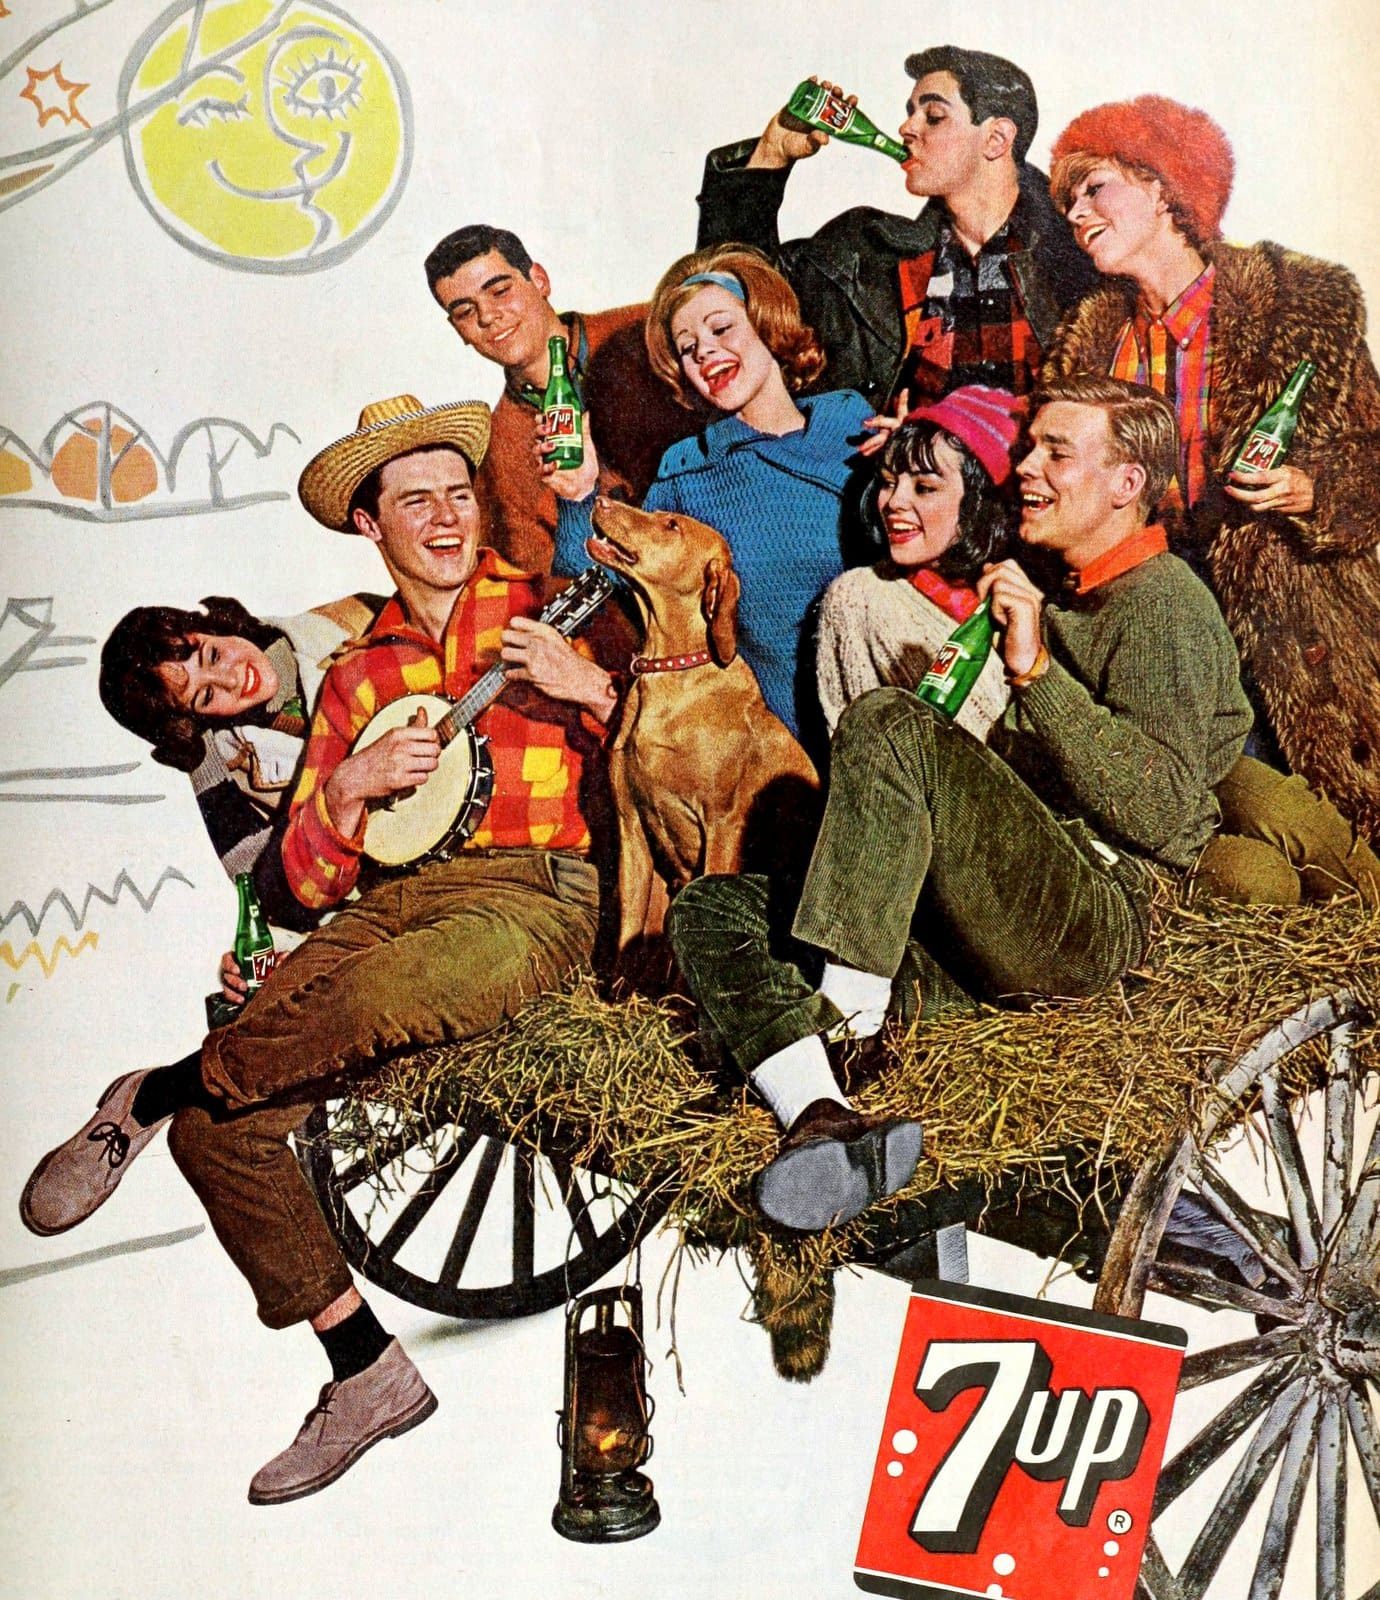 7UP on a singalong hayride (1962)